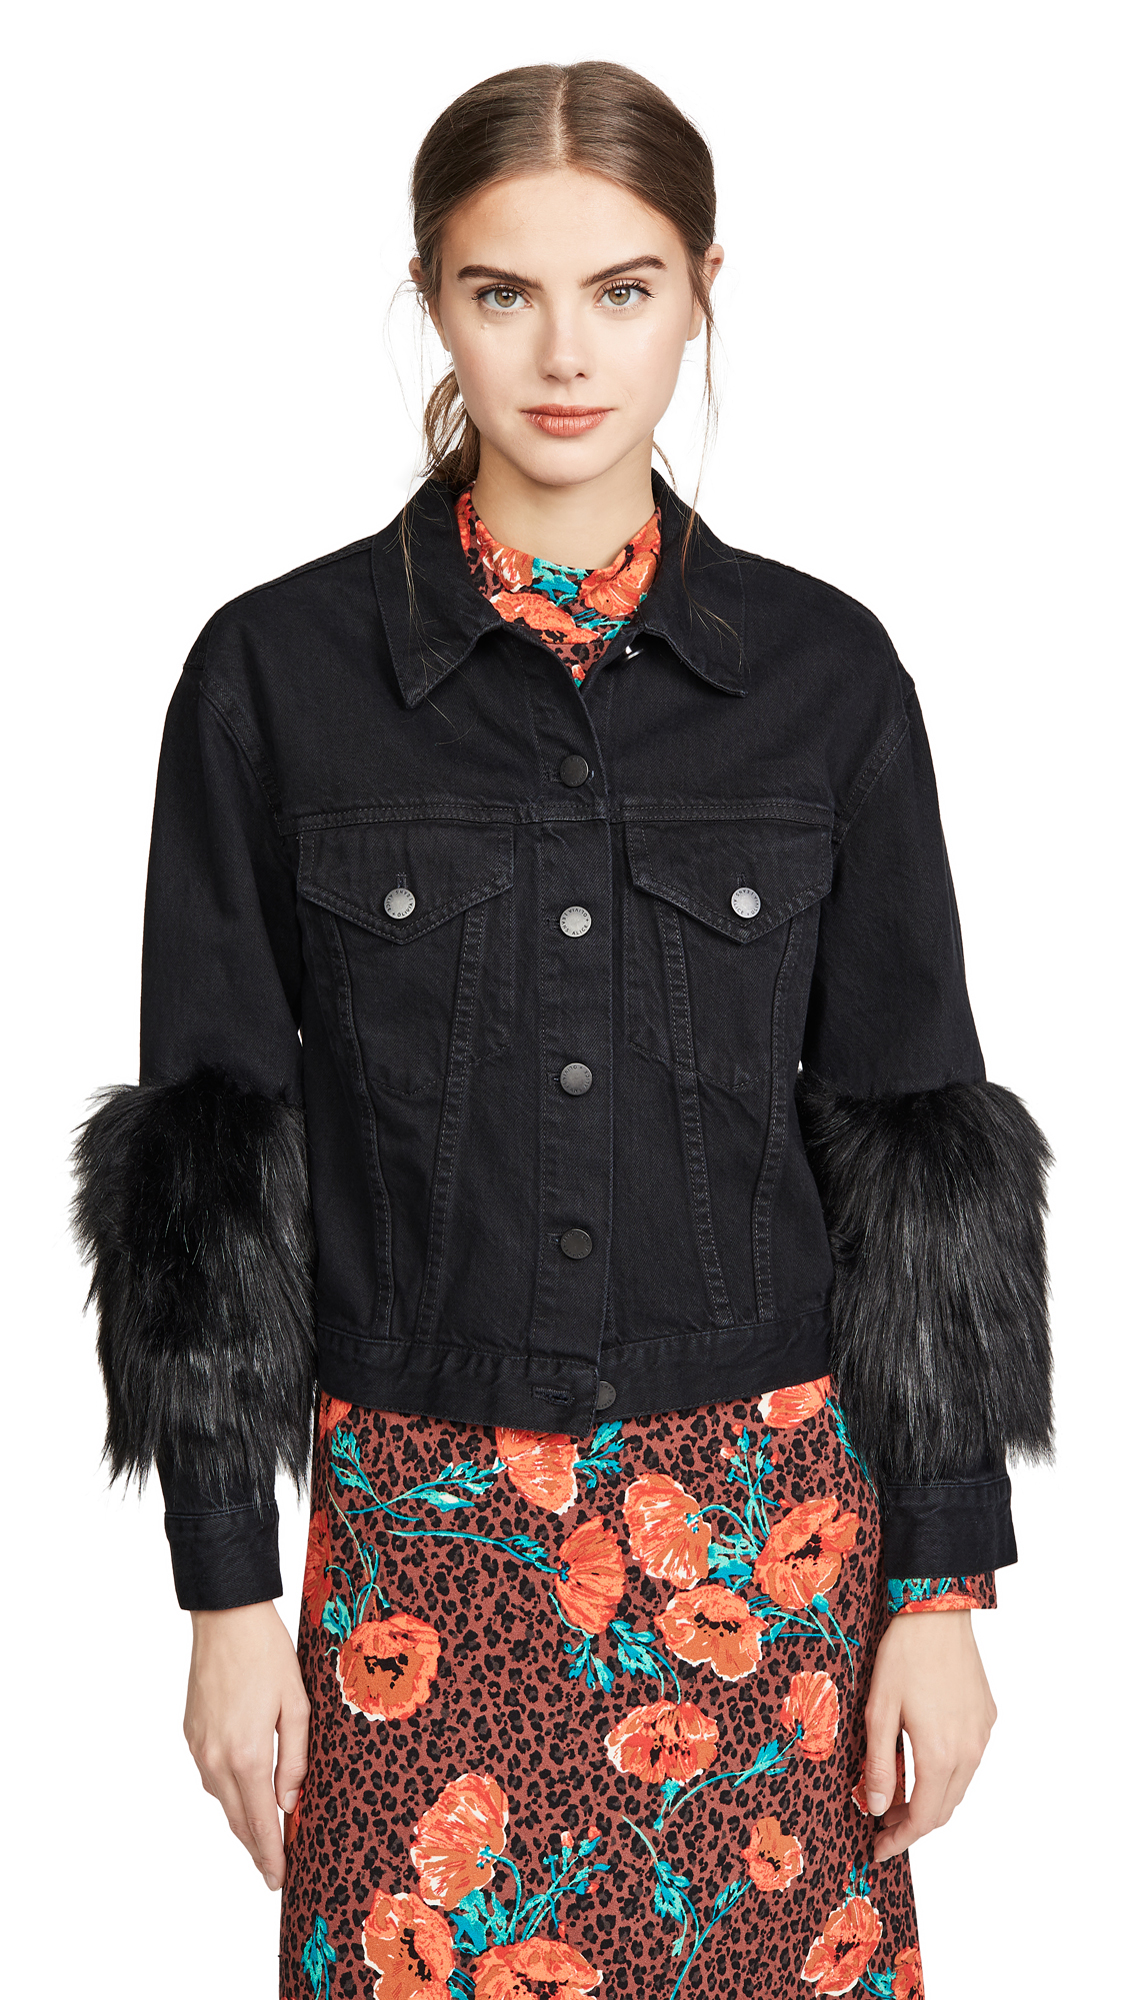 ALICE + OLIVIA JEANS Cropped Jacket with Faux Fur Sleeve - Self Love